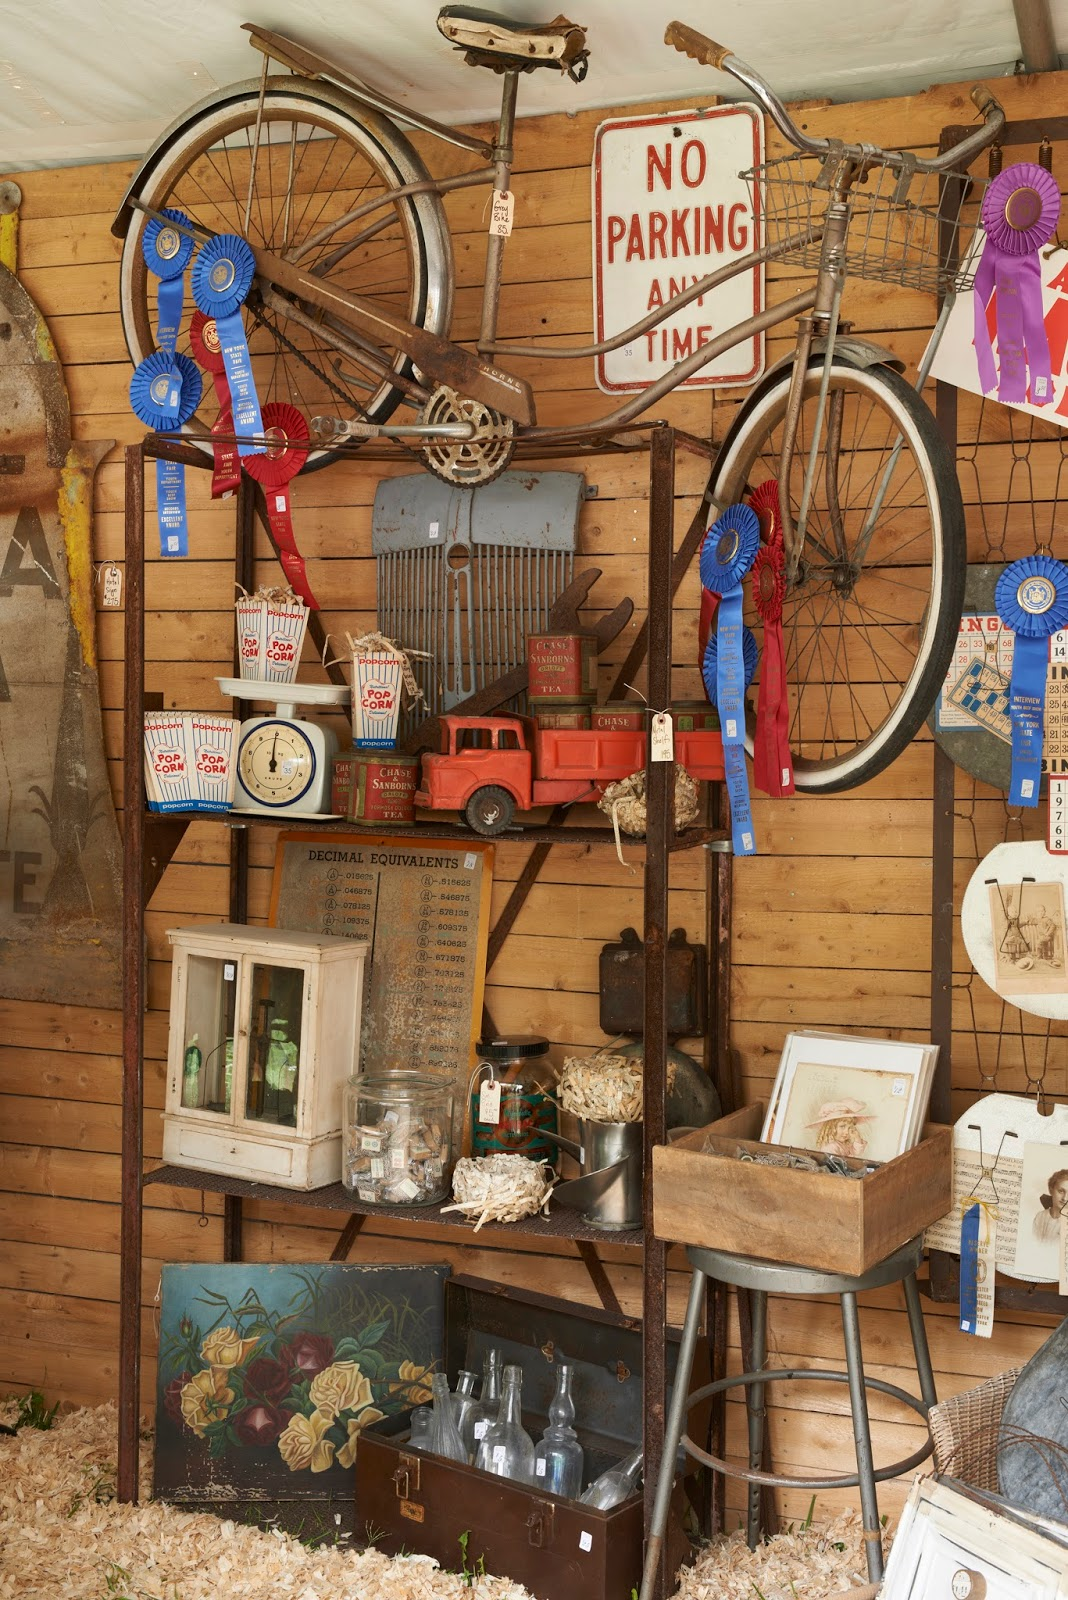 Country living fair 2016 rhinebeck ny ticket giveaway for Country living sweepstakes april 2016